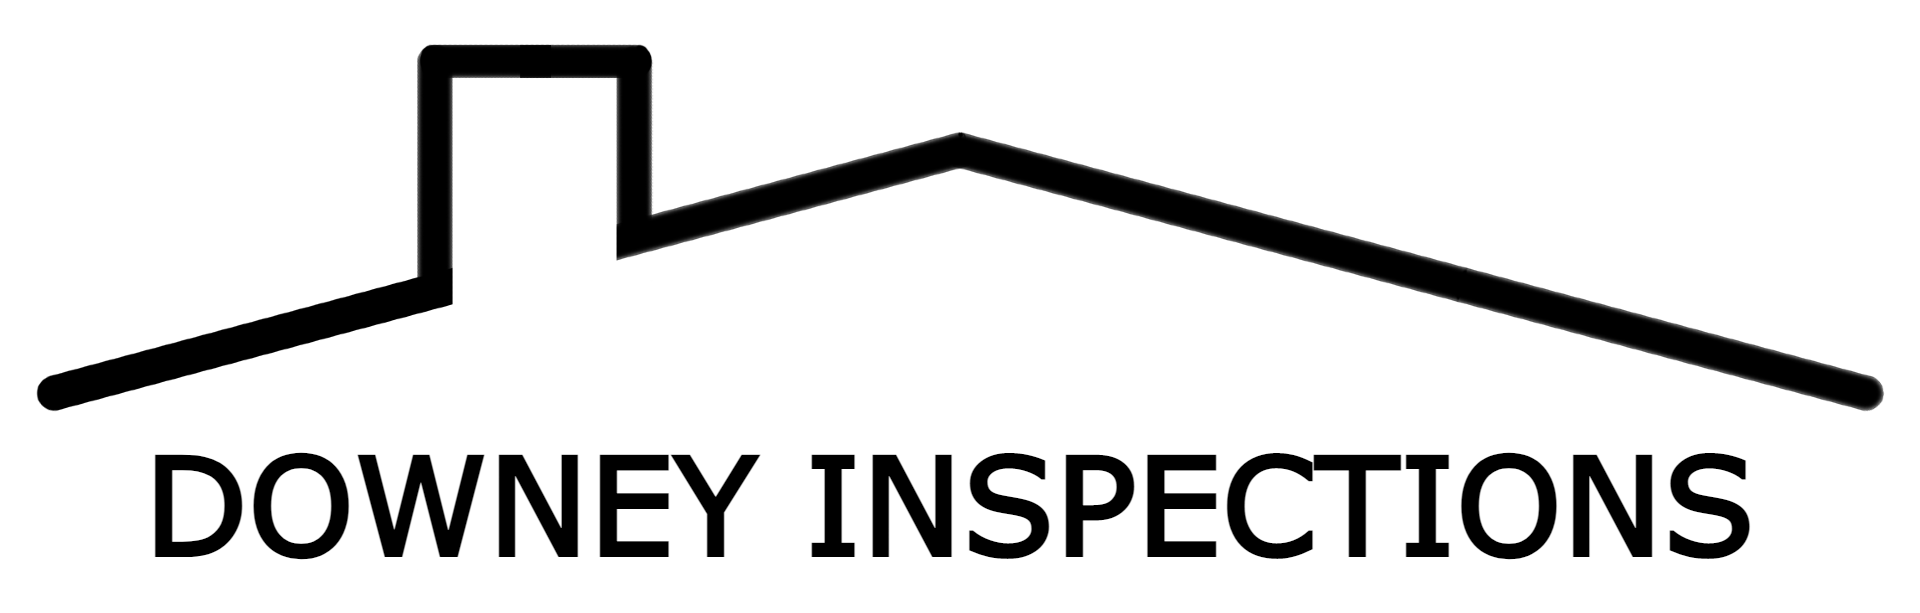 Downey Inspections